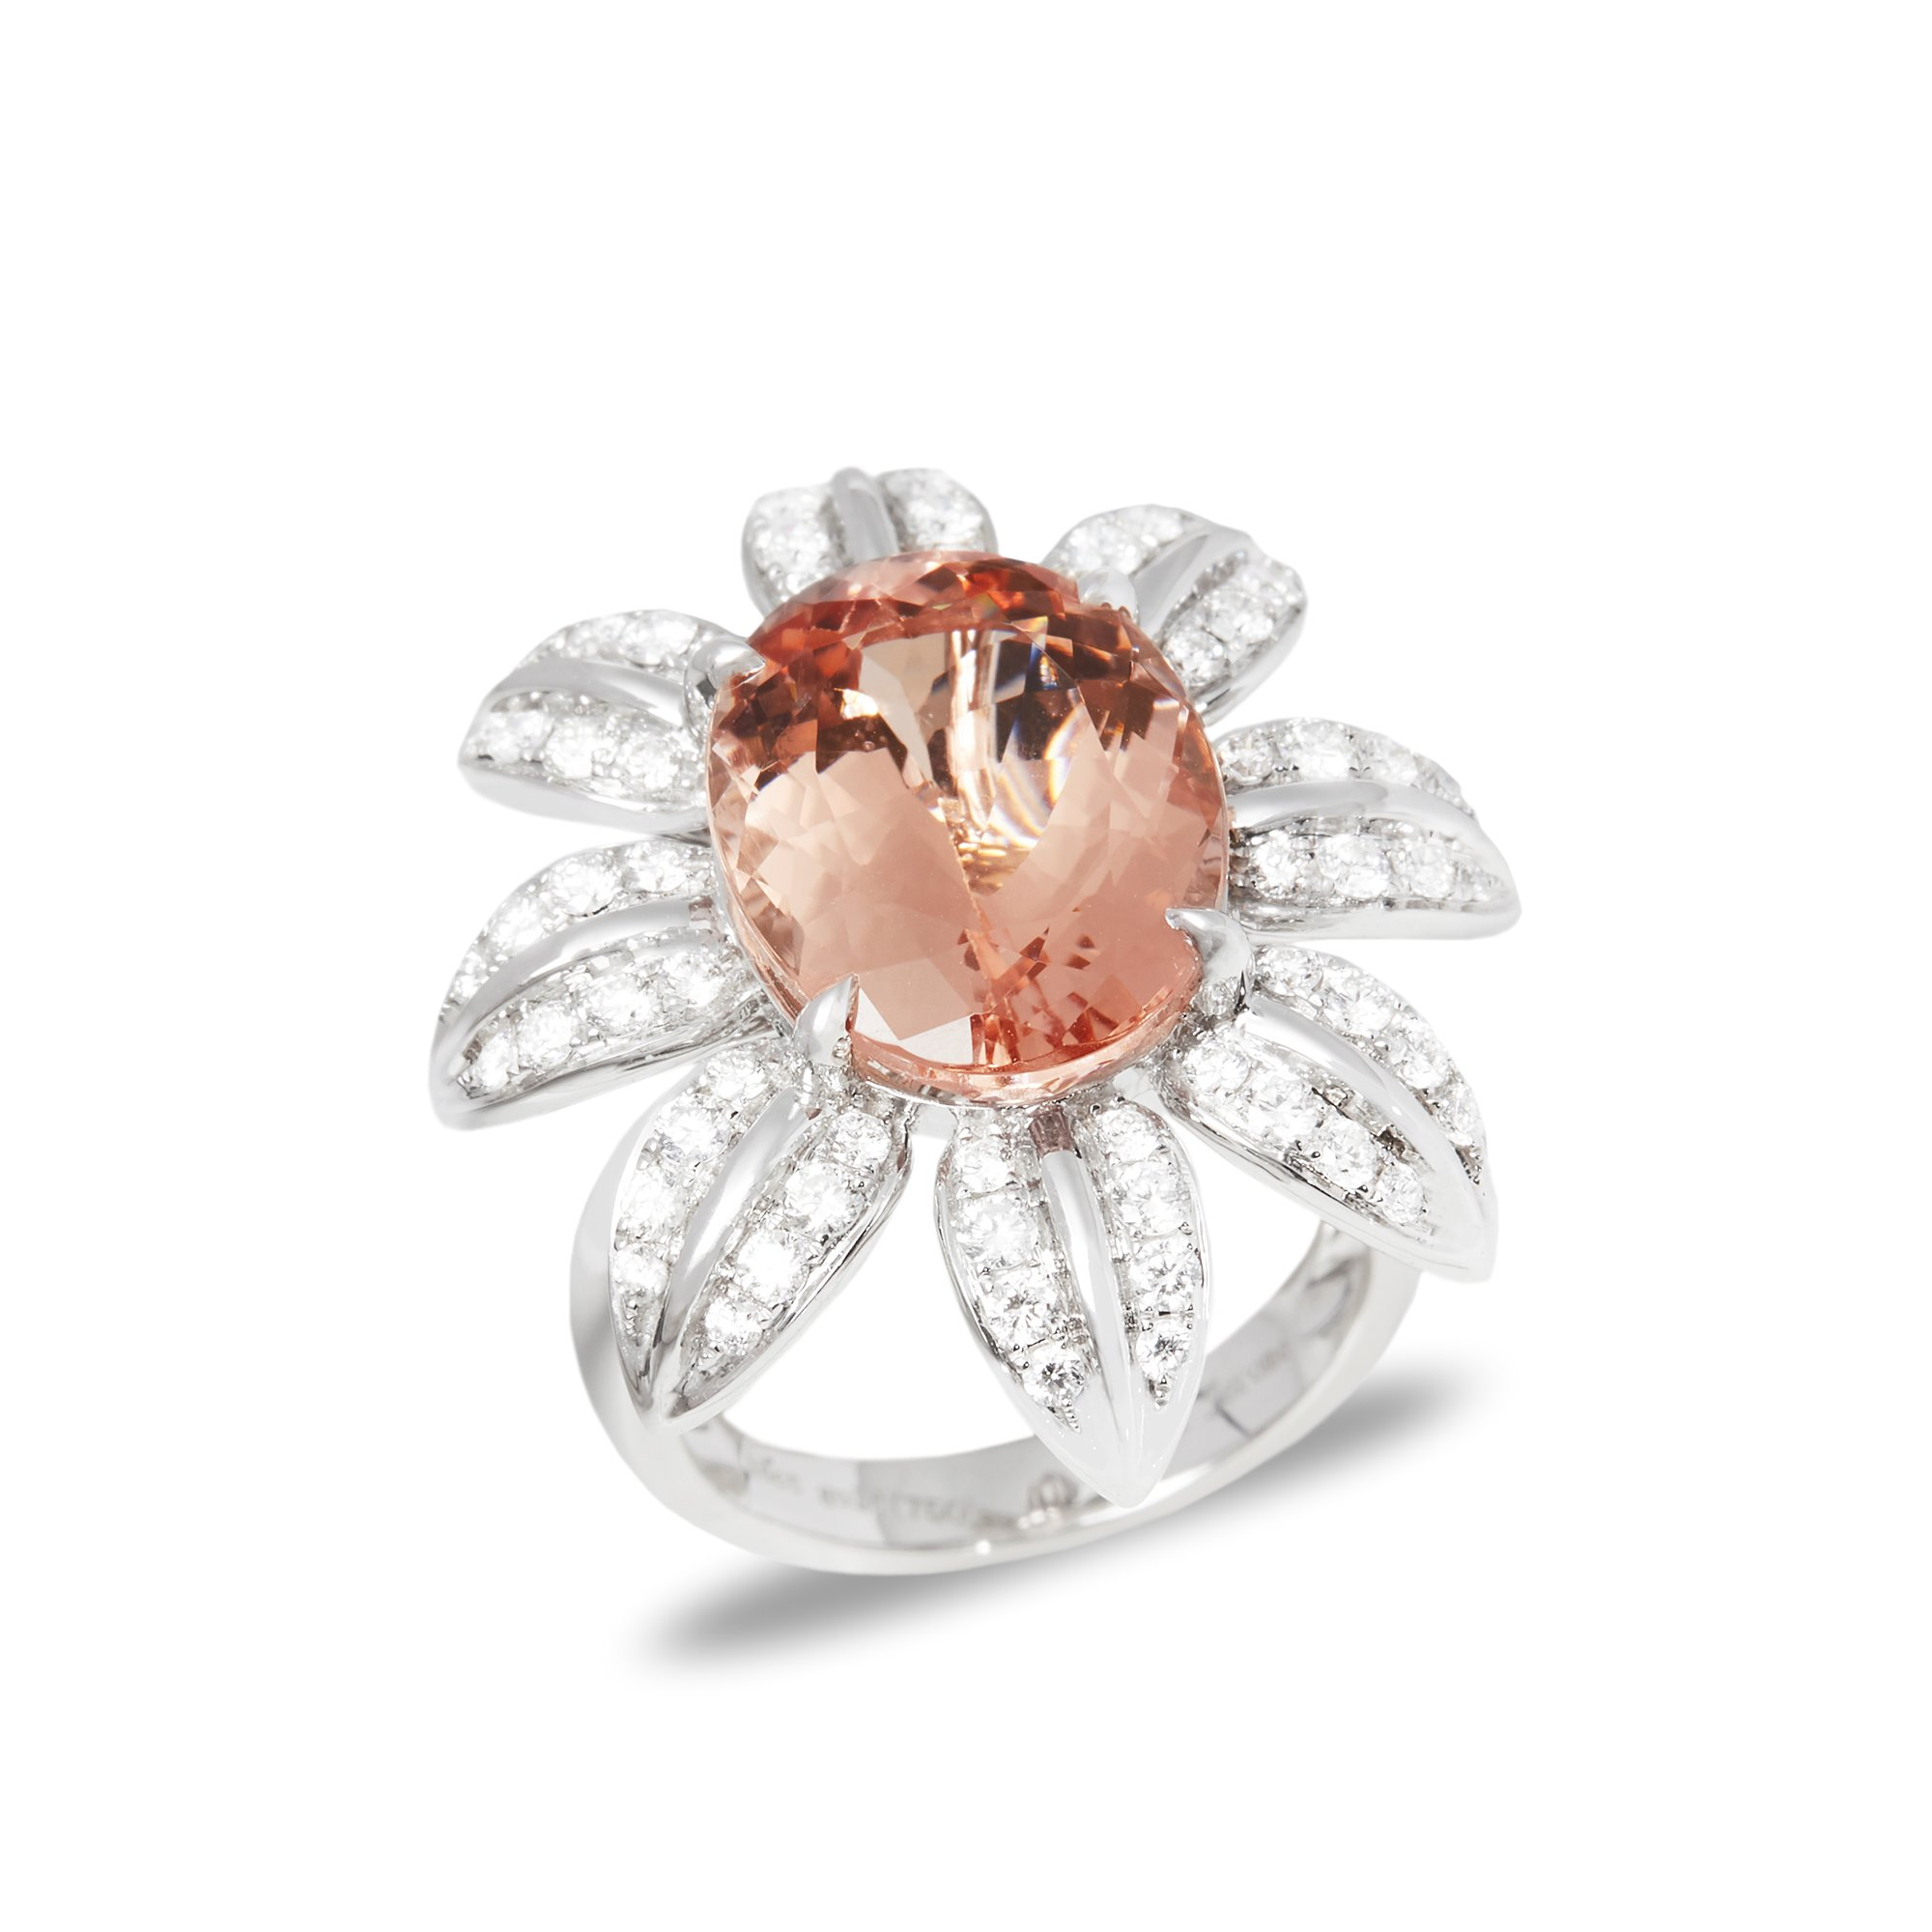 David Jerome Certified 8.86ct Oval Cut Morganite and Diamond 18ct Gold Ring